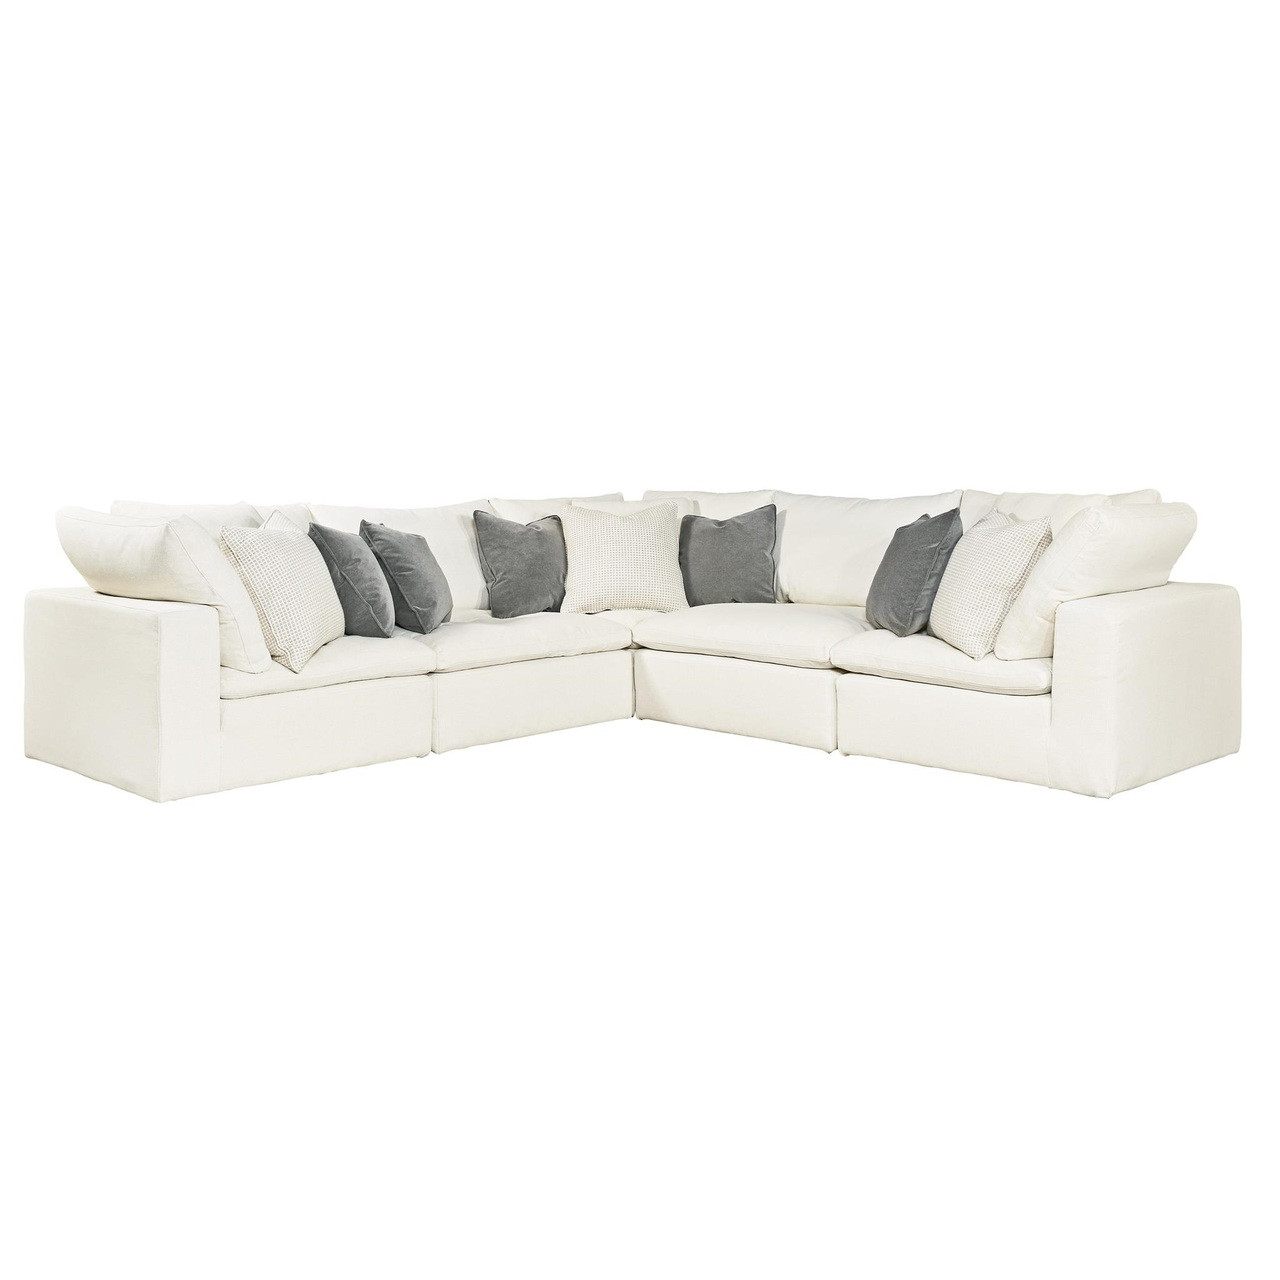 Palmer Coastal Beige 5 Pc Corner Sectional Sofa